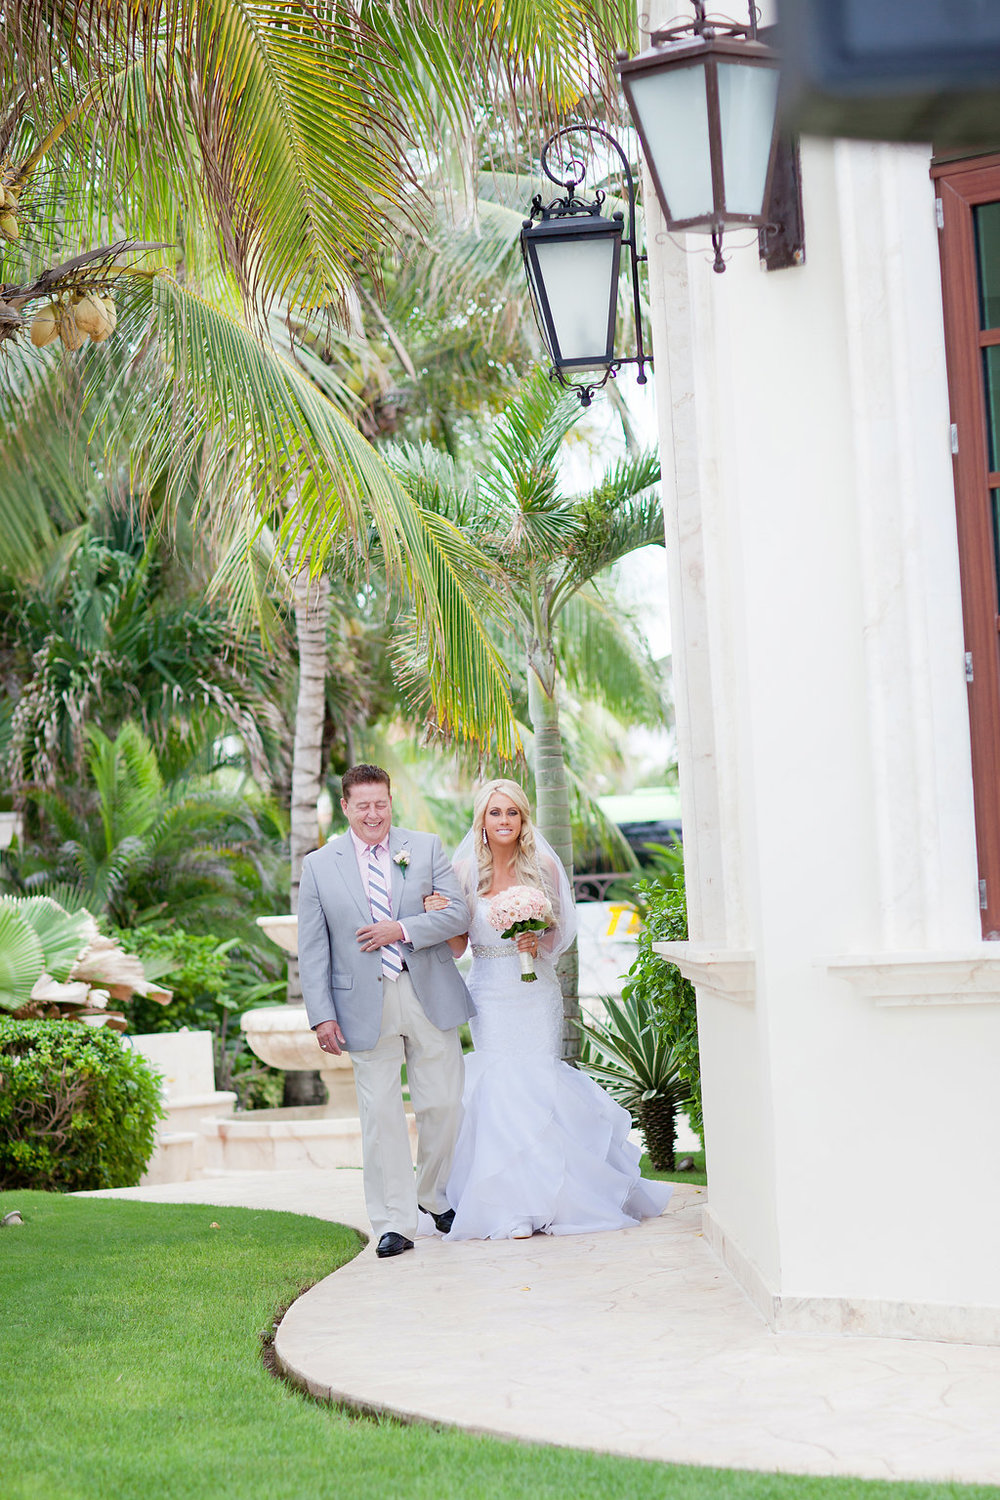 cancun-wedding-venue-14.jpg